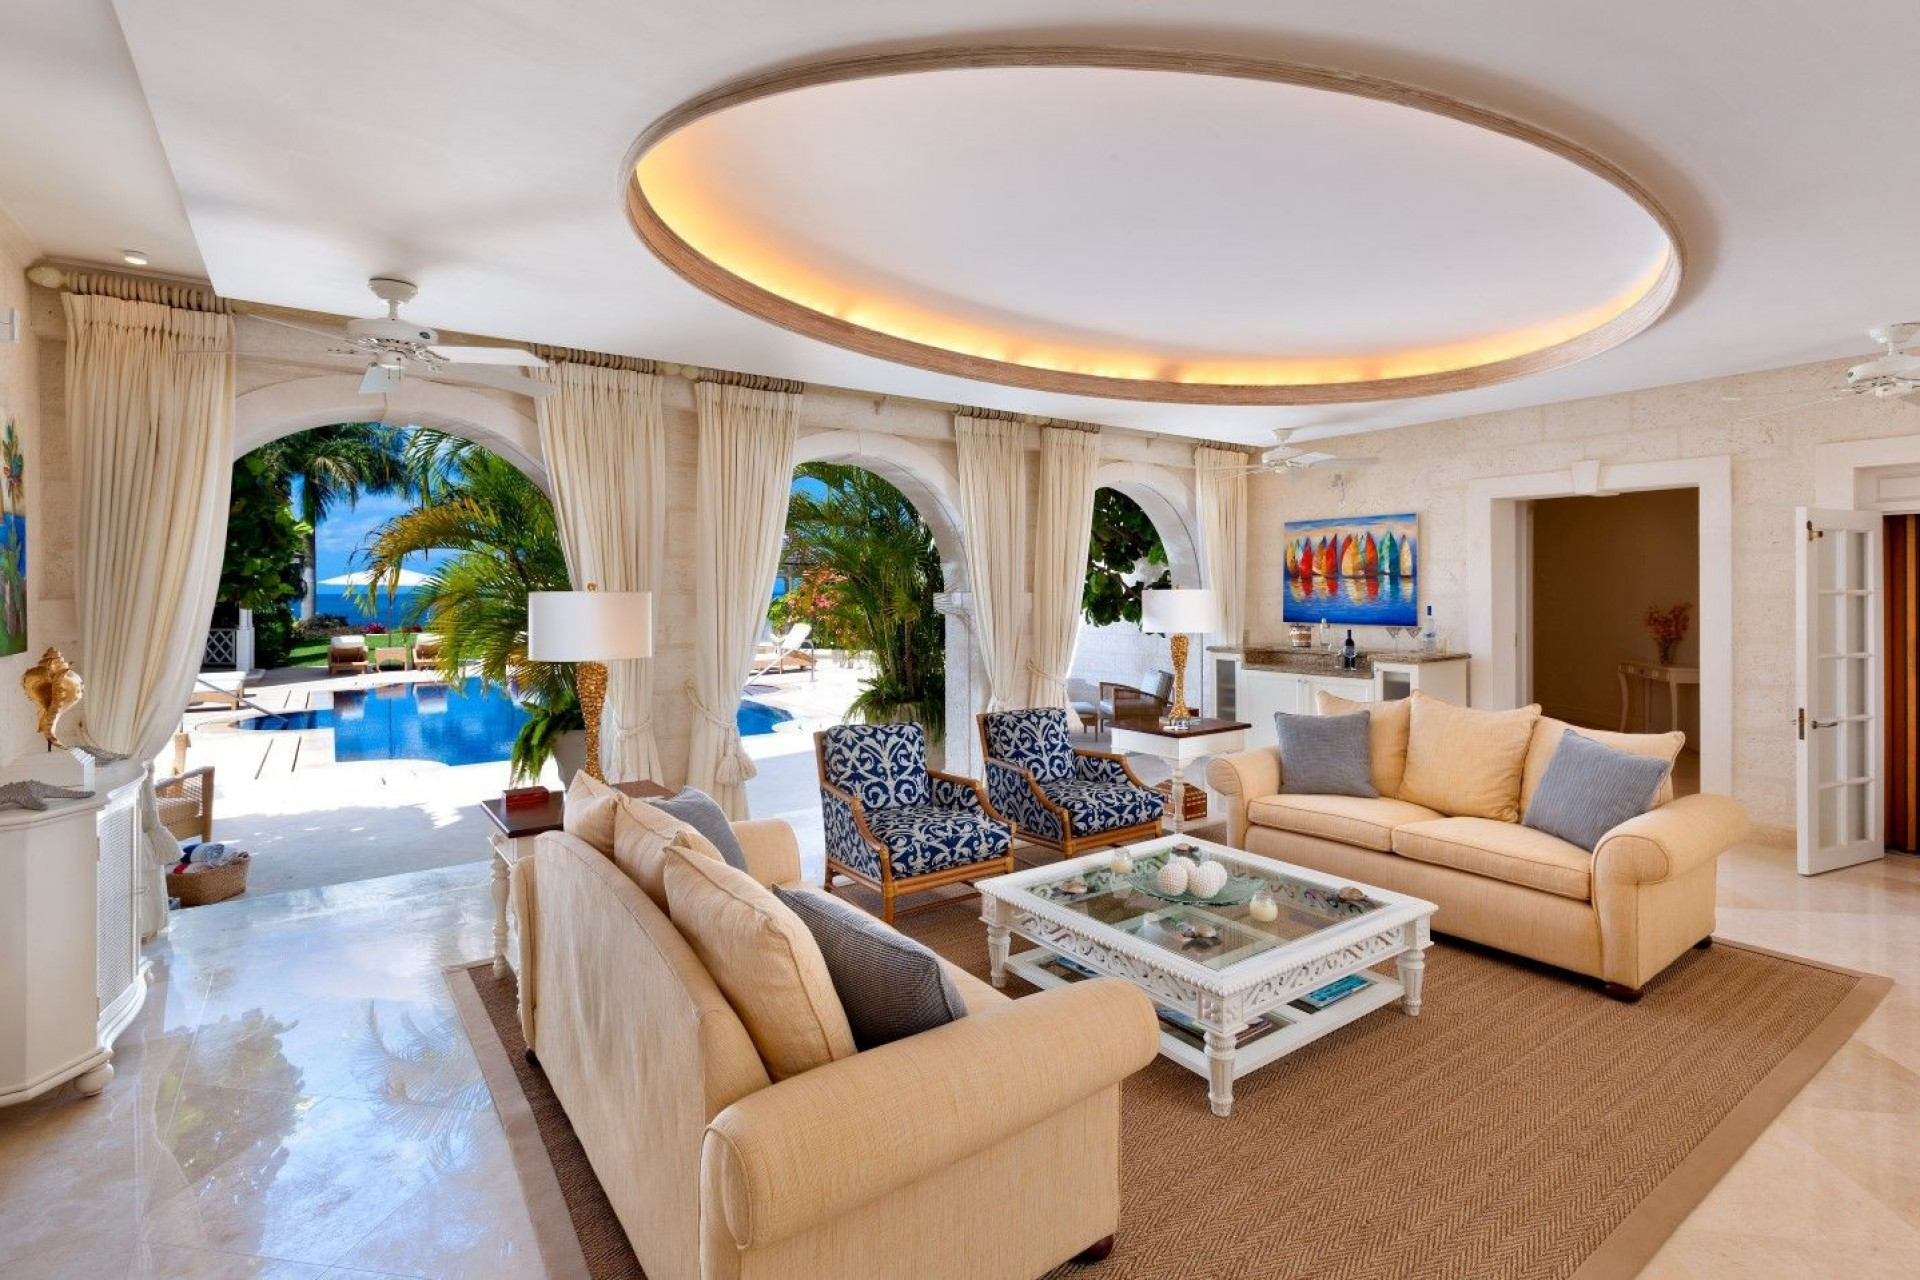 Lounge Area Looking to Pool 5 Bedroom Villa Sugar Hill, Barbados with Private Pool, Putting Green & Sea Views